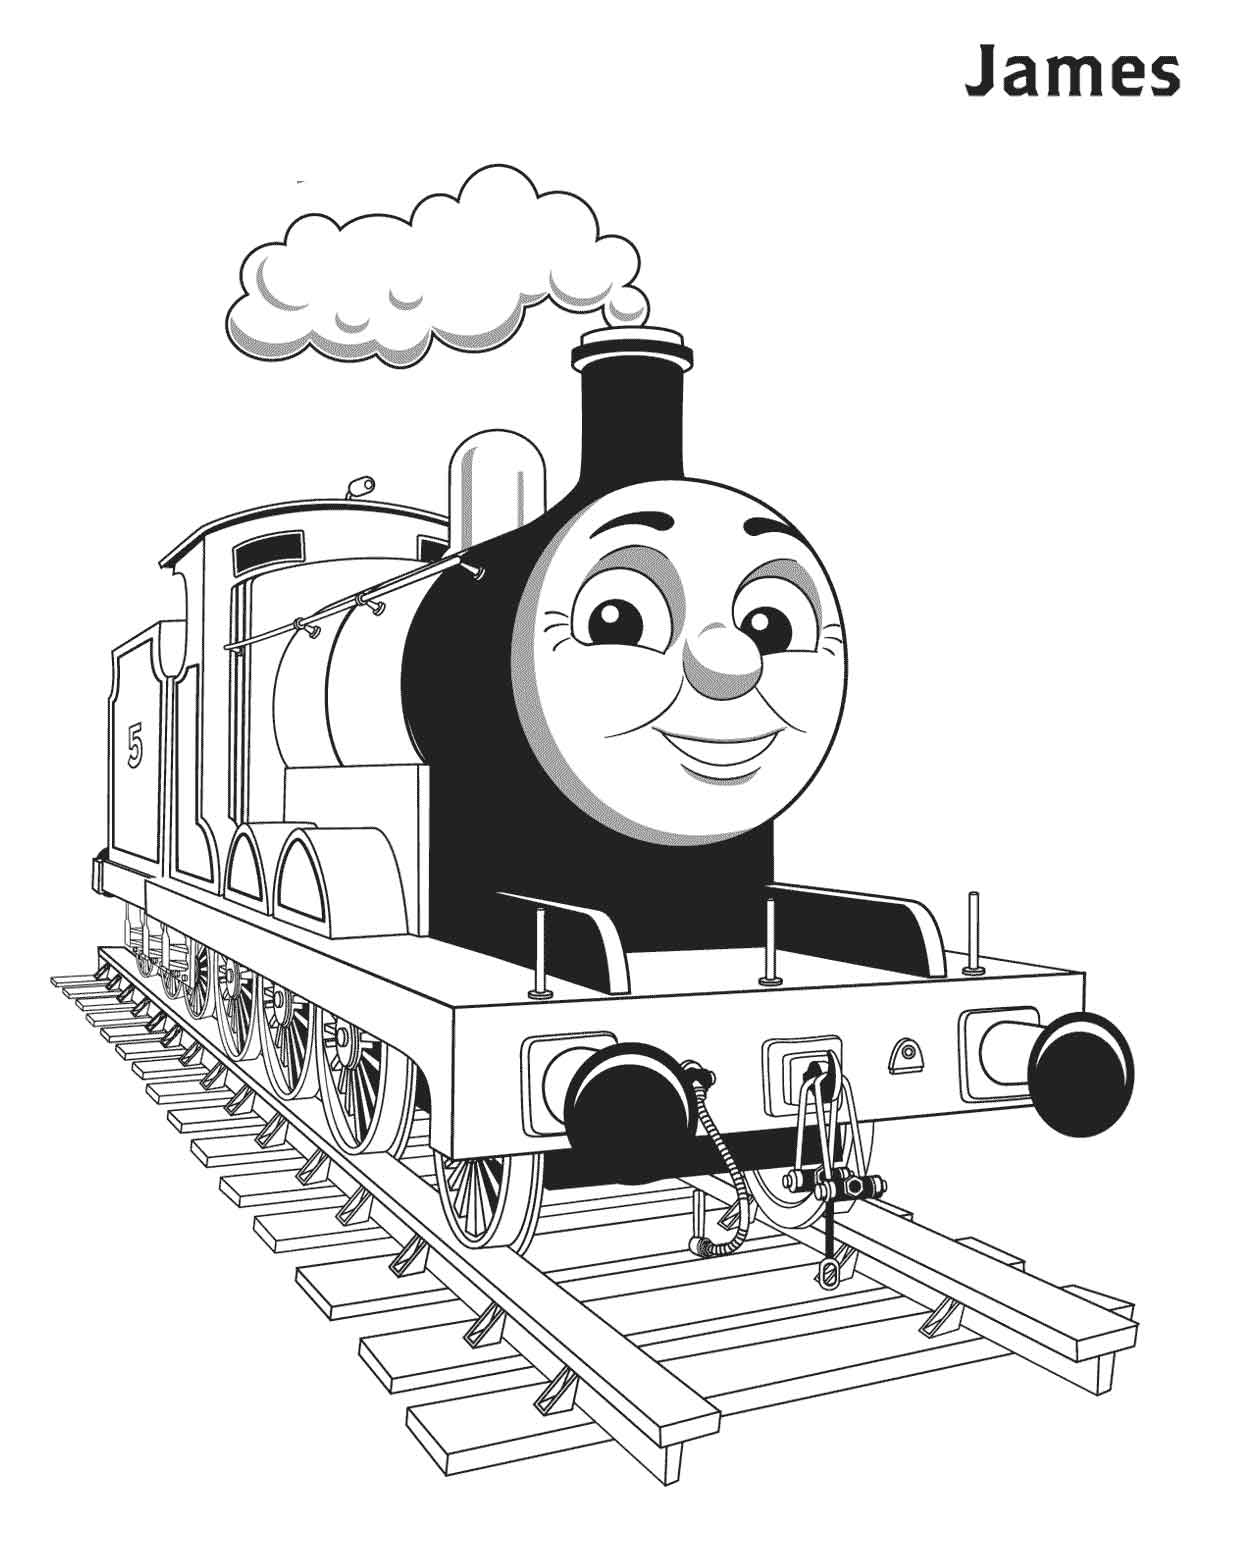 thomas and friends coloring 30 free printable thomas the train coloring pages thomas and coloring friends